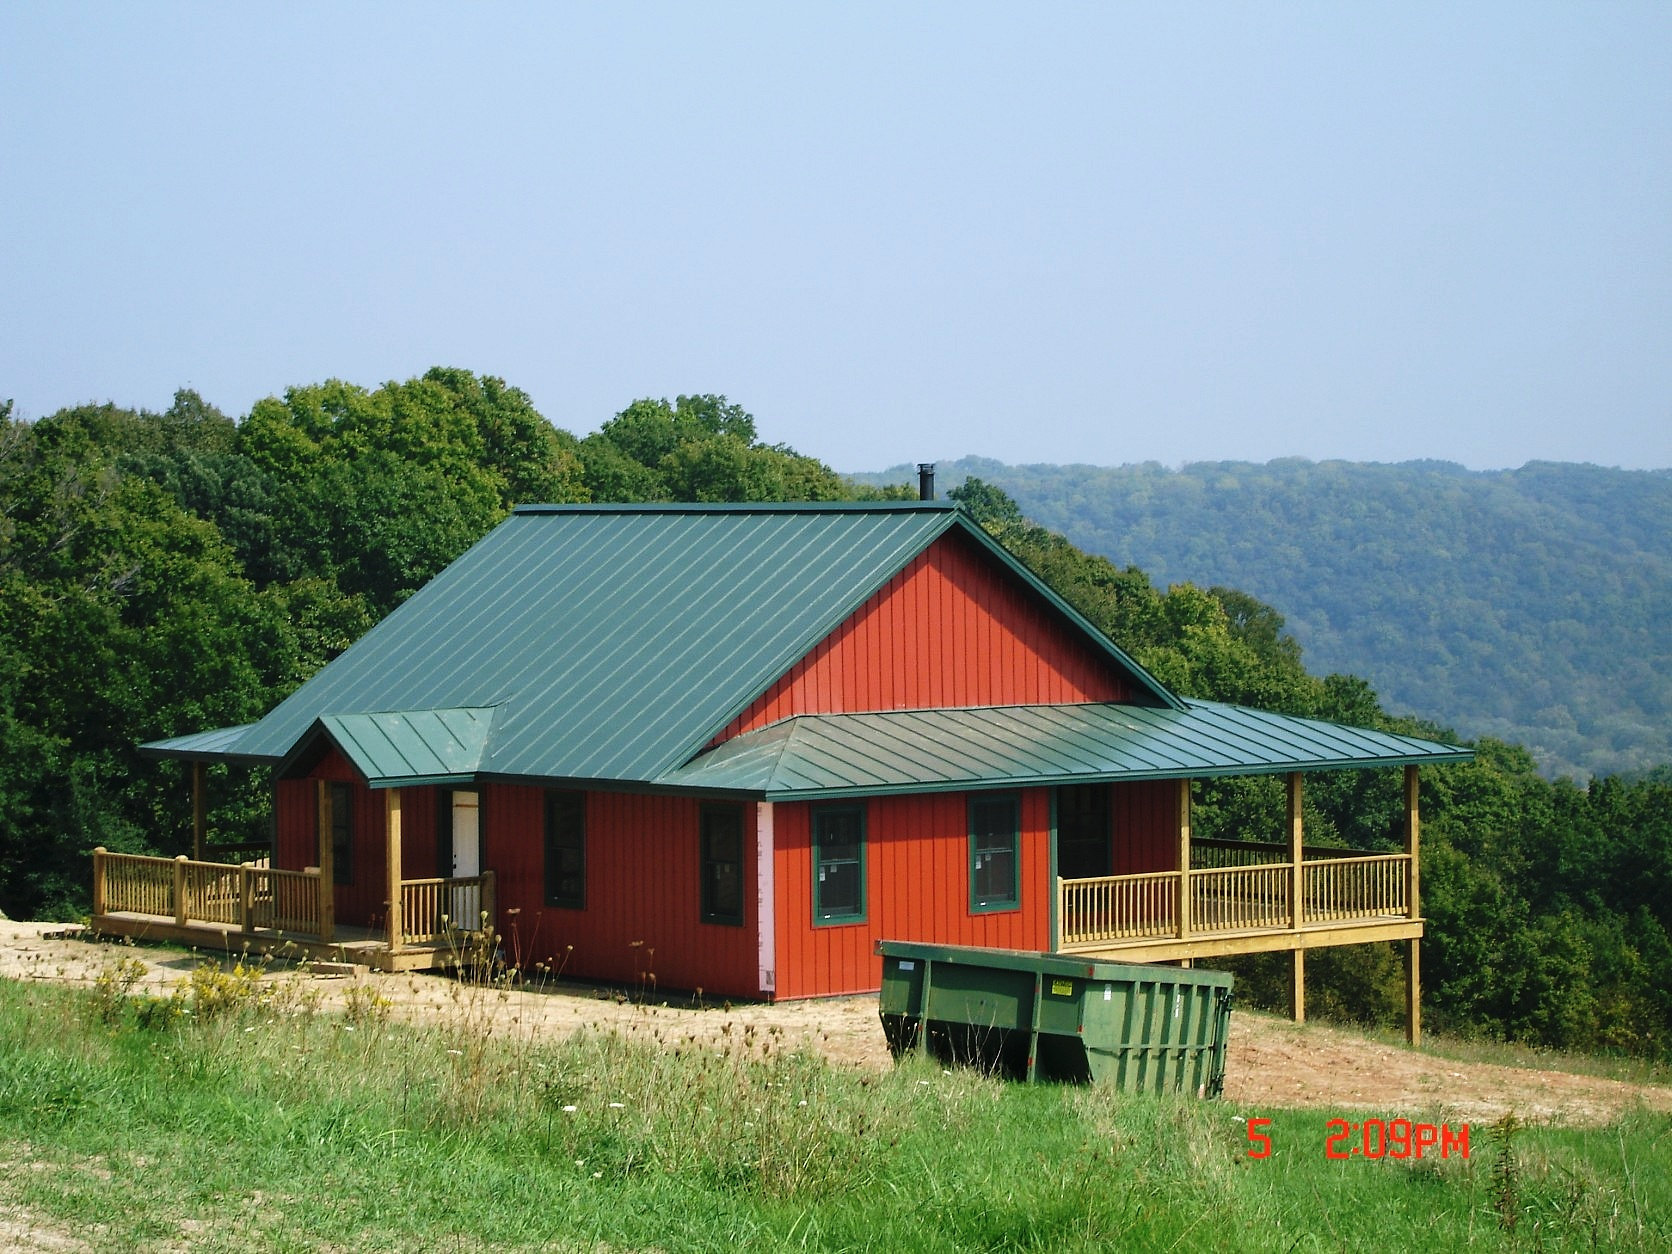 Standing seam sheet metal roofing dark sherwood green house residential wisconsin iowa illinois minnesota north dakota